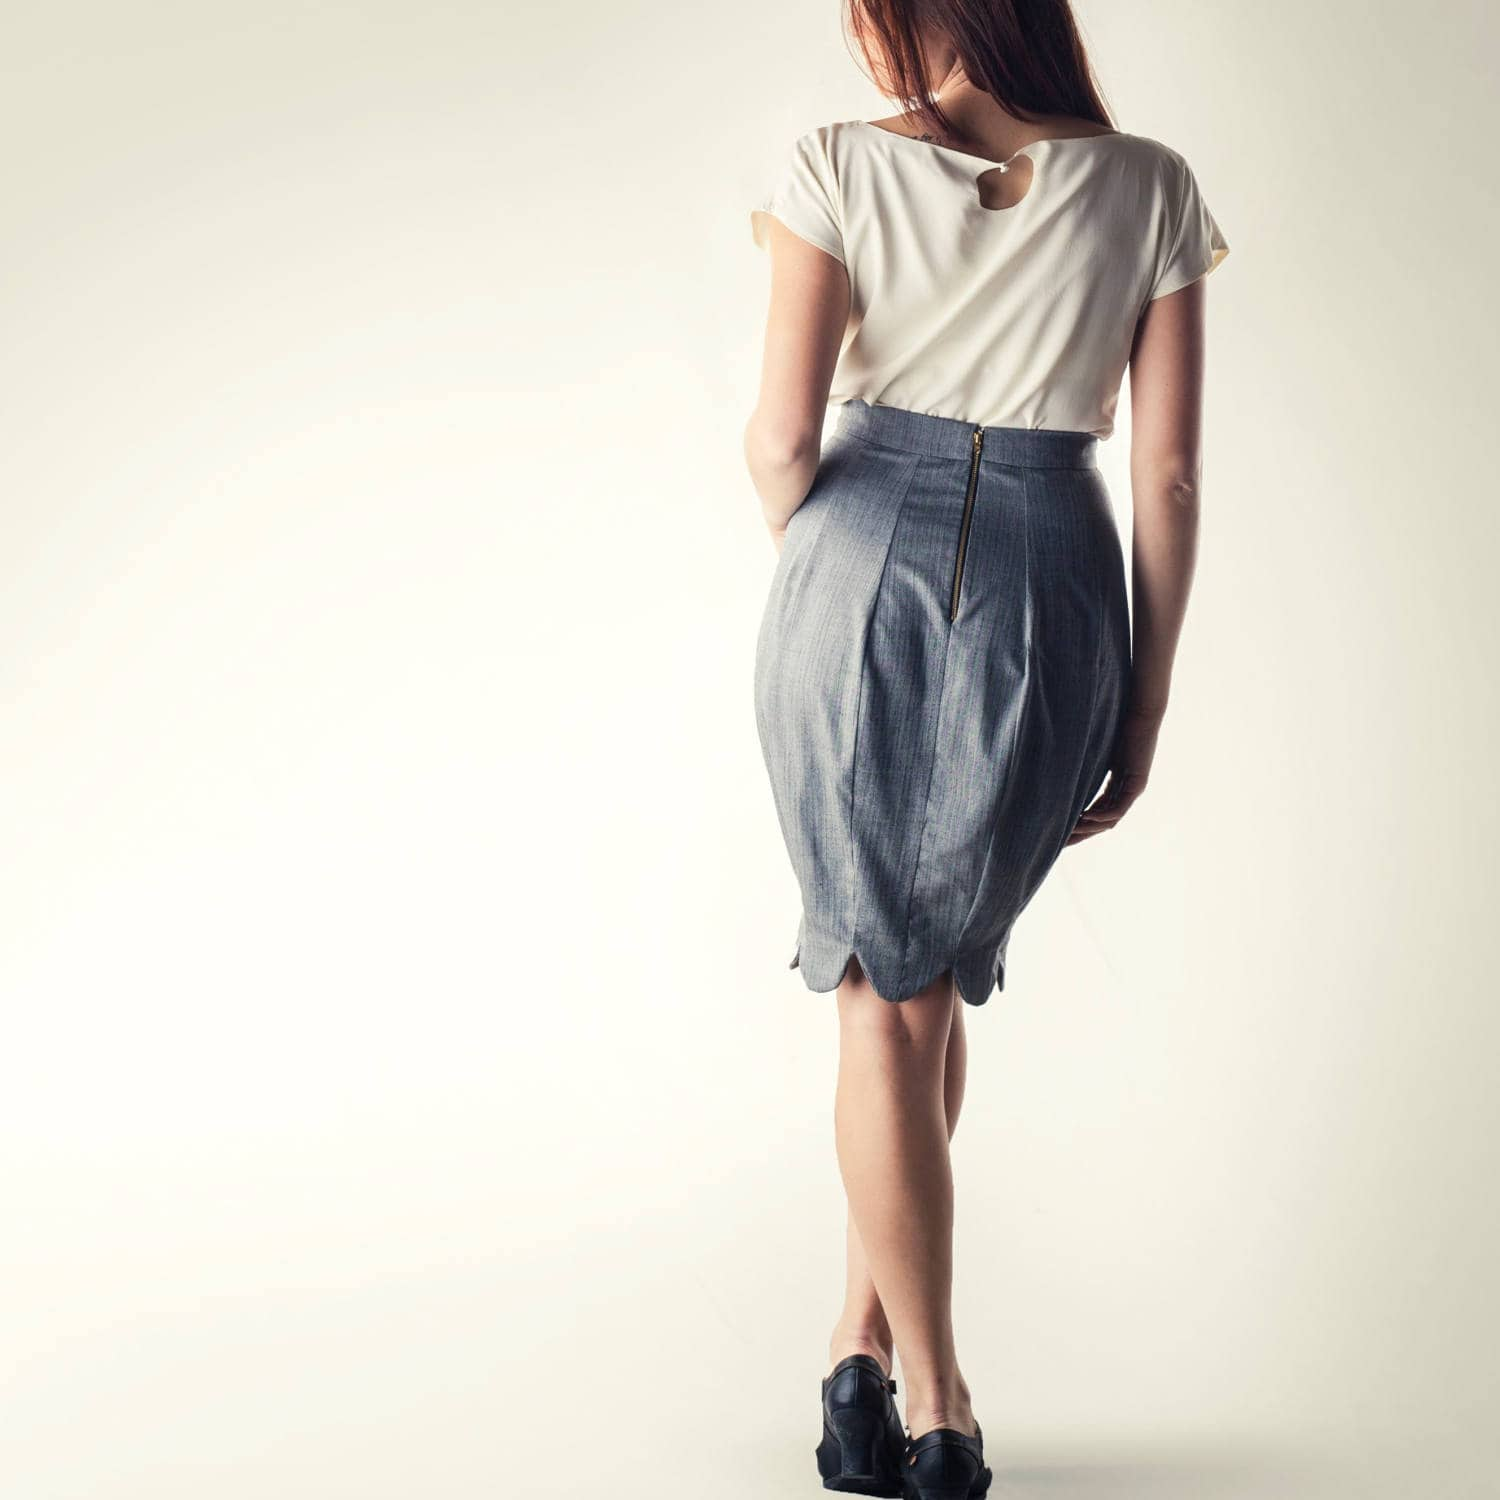 Hourglass pencil skirt in grey - Larimeloom